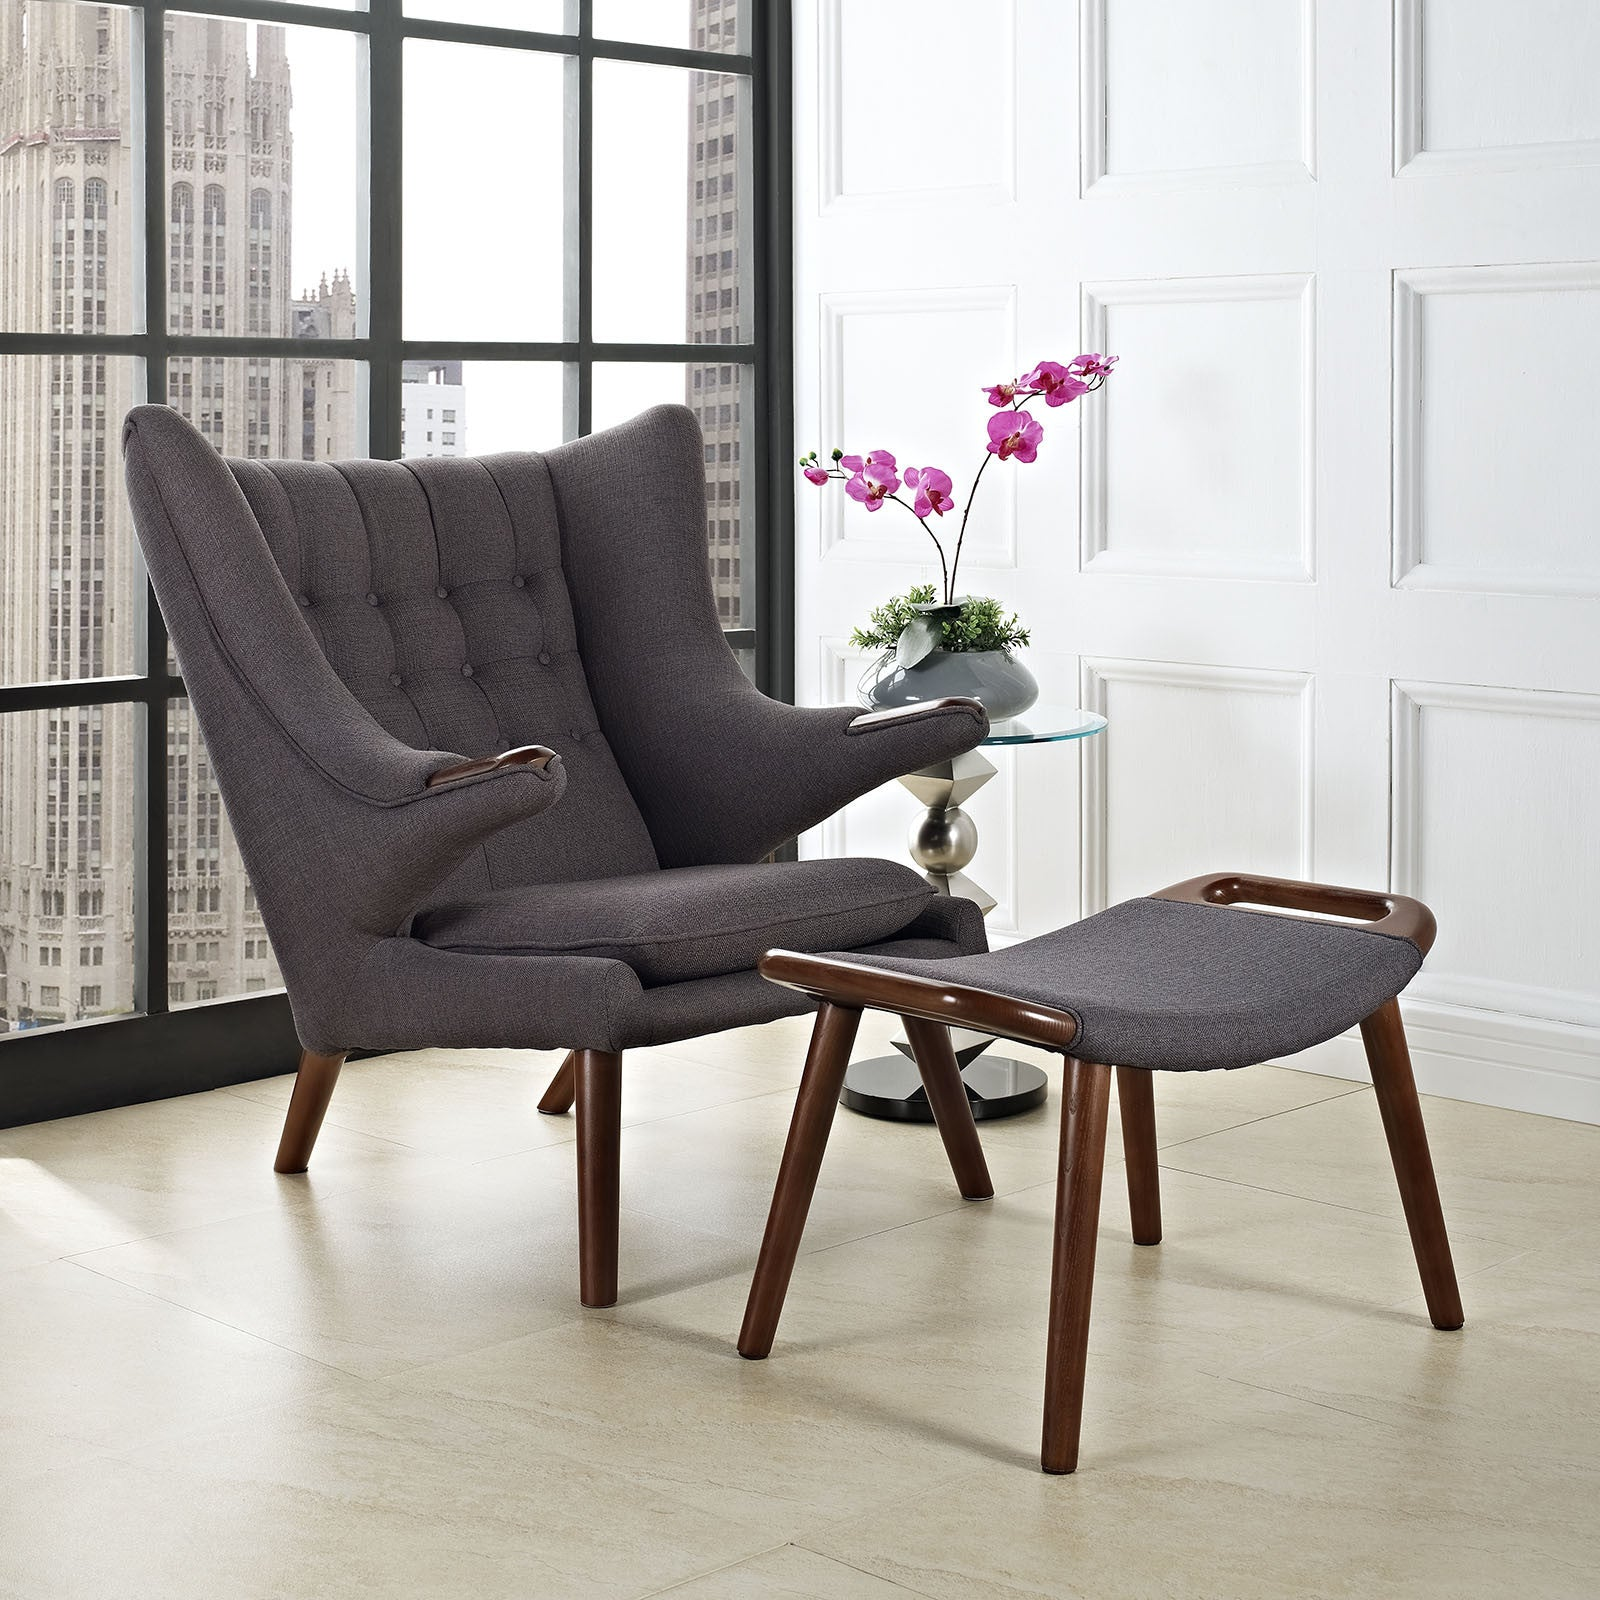 Wegner Papa Bear Chair & Ottoman Reproduction The Modern Source